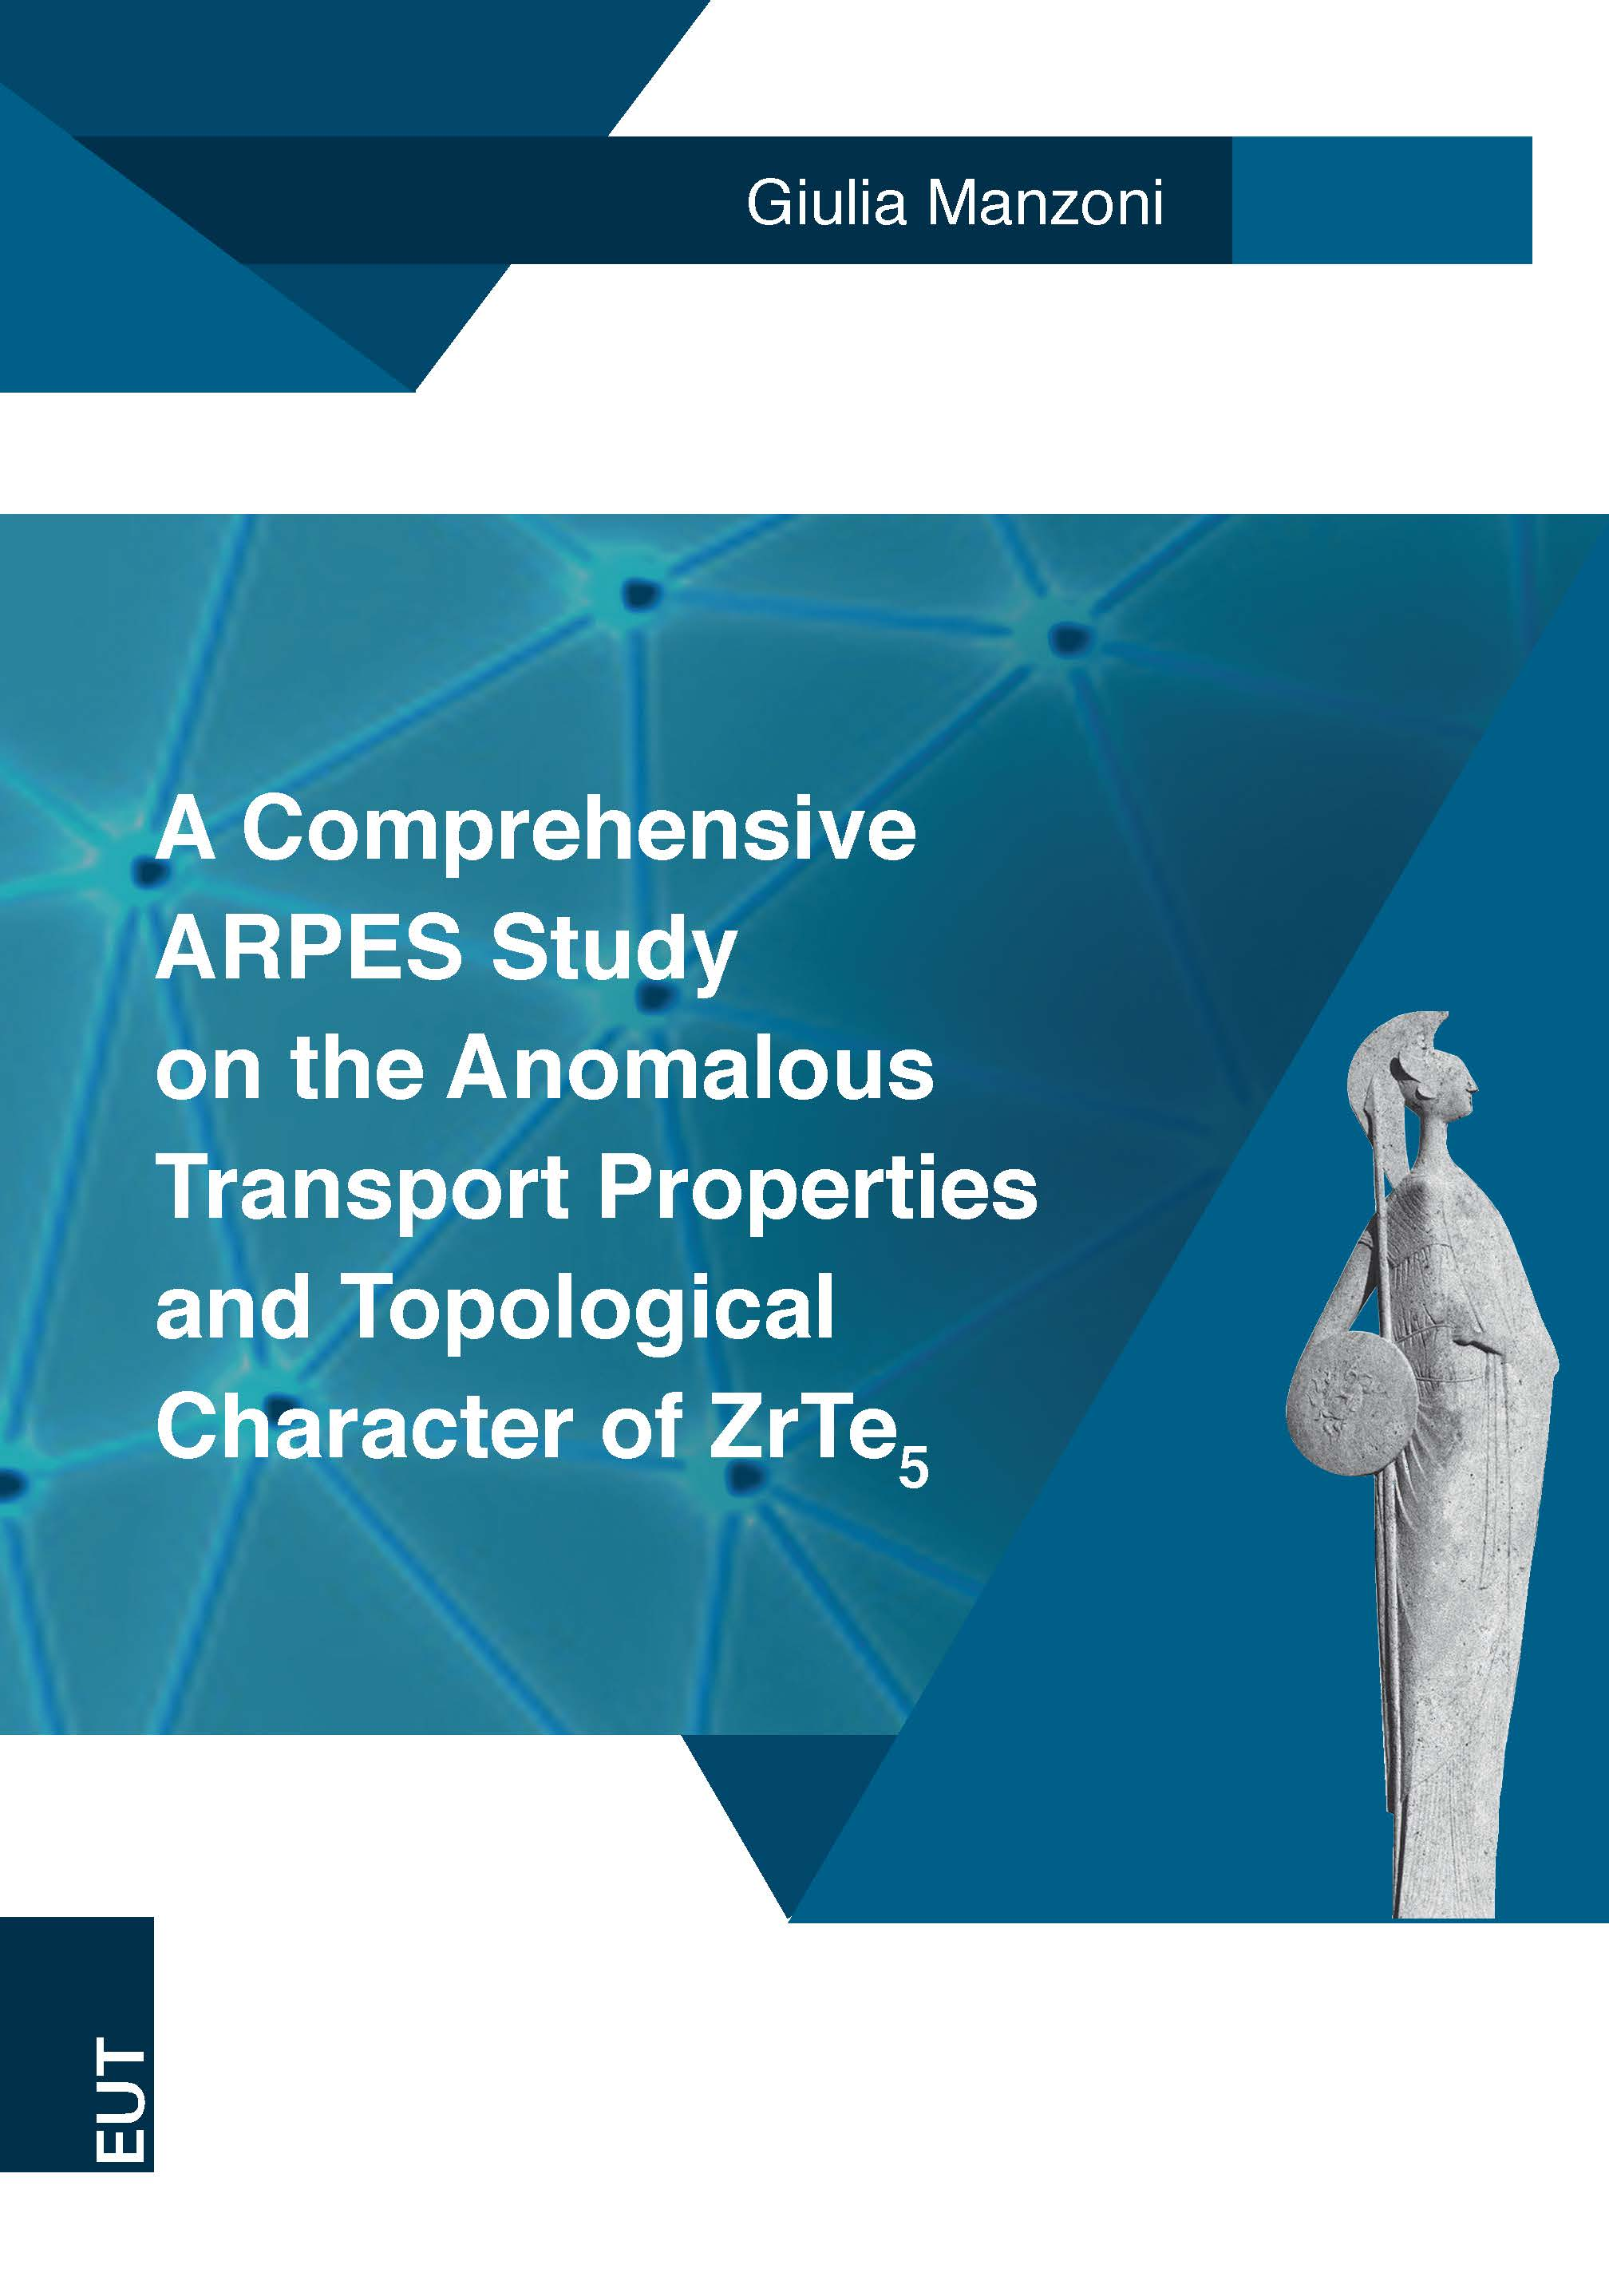 A Comprehensive ARPES Study on the Anomalous Transport Properties and Topological Character of ZrTe<sub>5</sub>